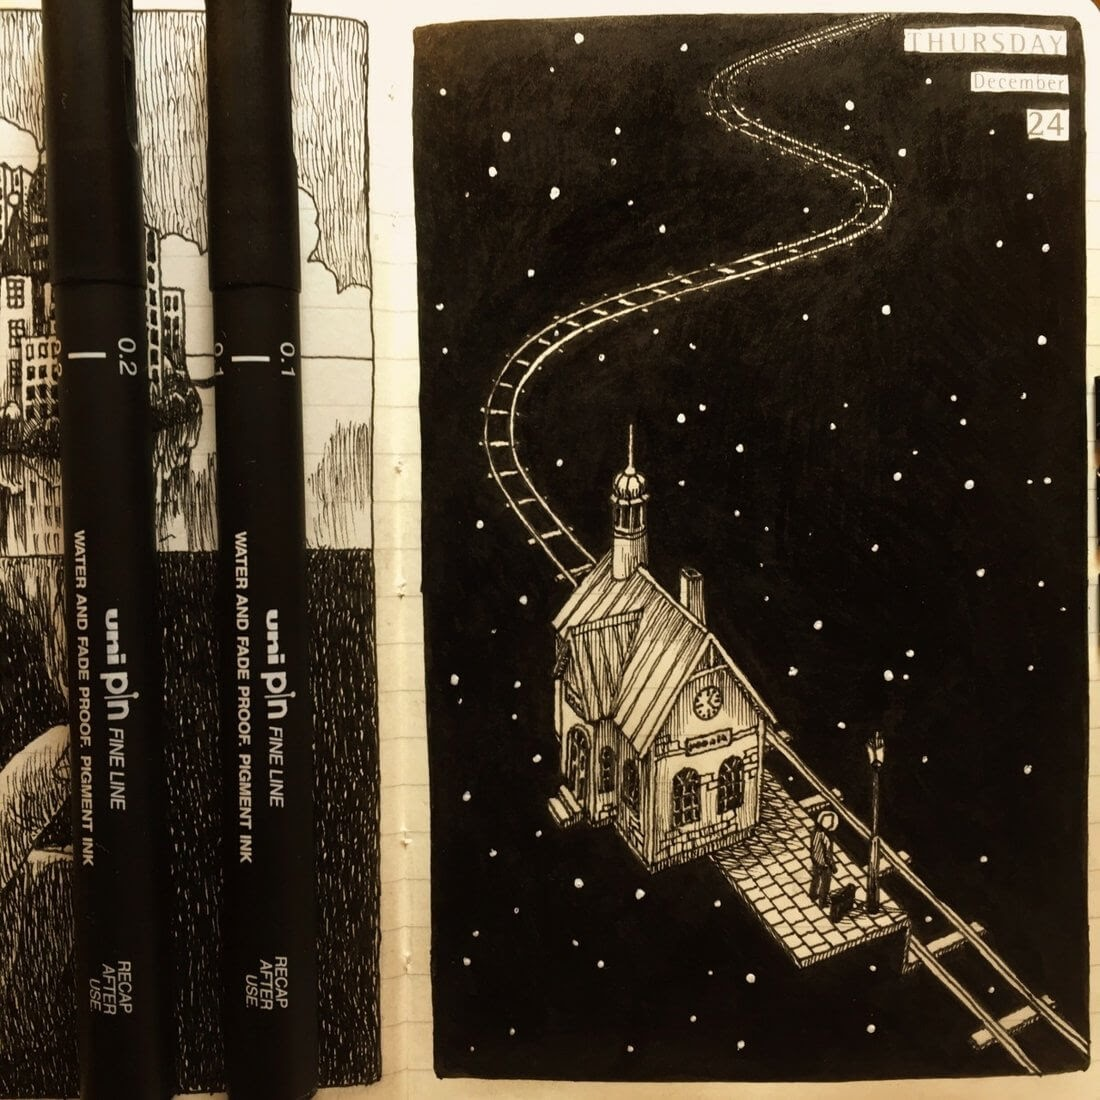 06-Space-Travel-Nina-Johansson-Moleskine-Diary-of-Surreal-Ink-Drawings-www-designstack-co